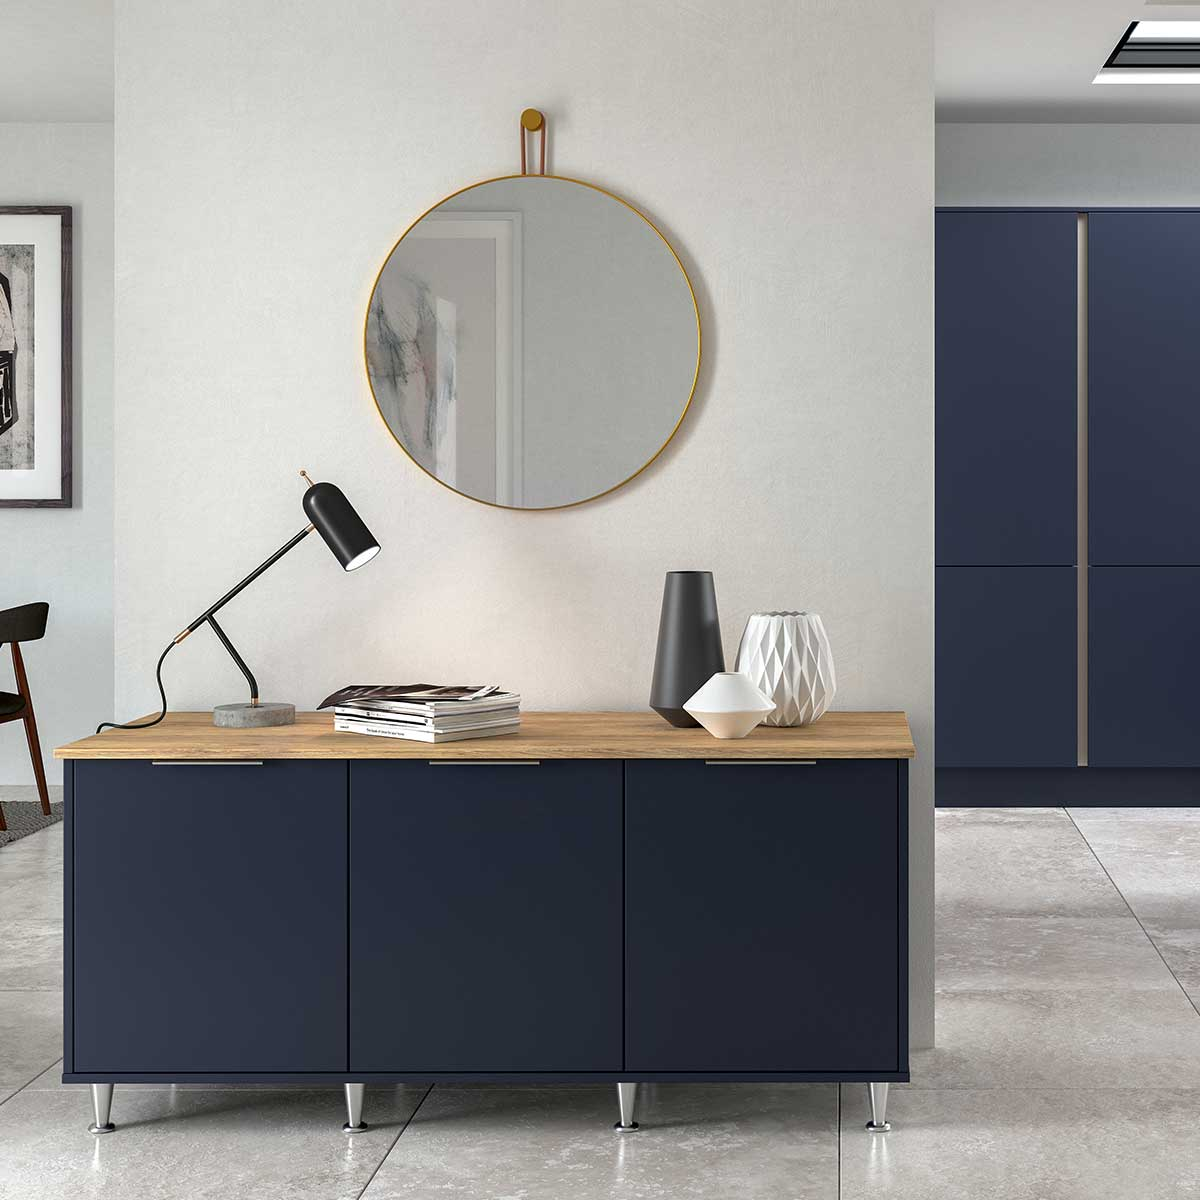 Larna sideboard in Graphite.